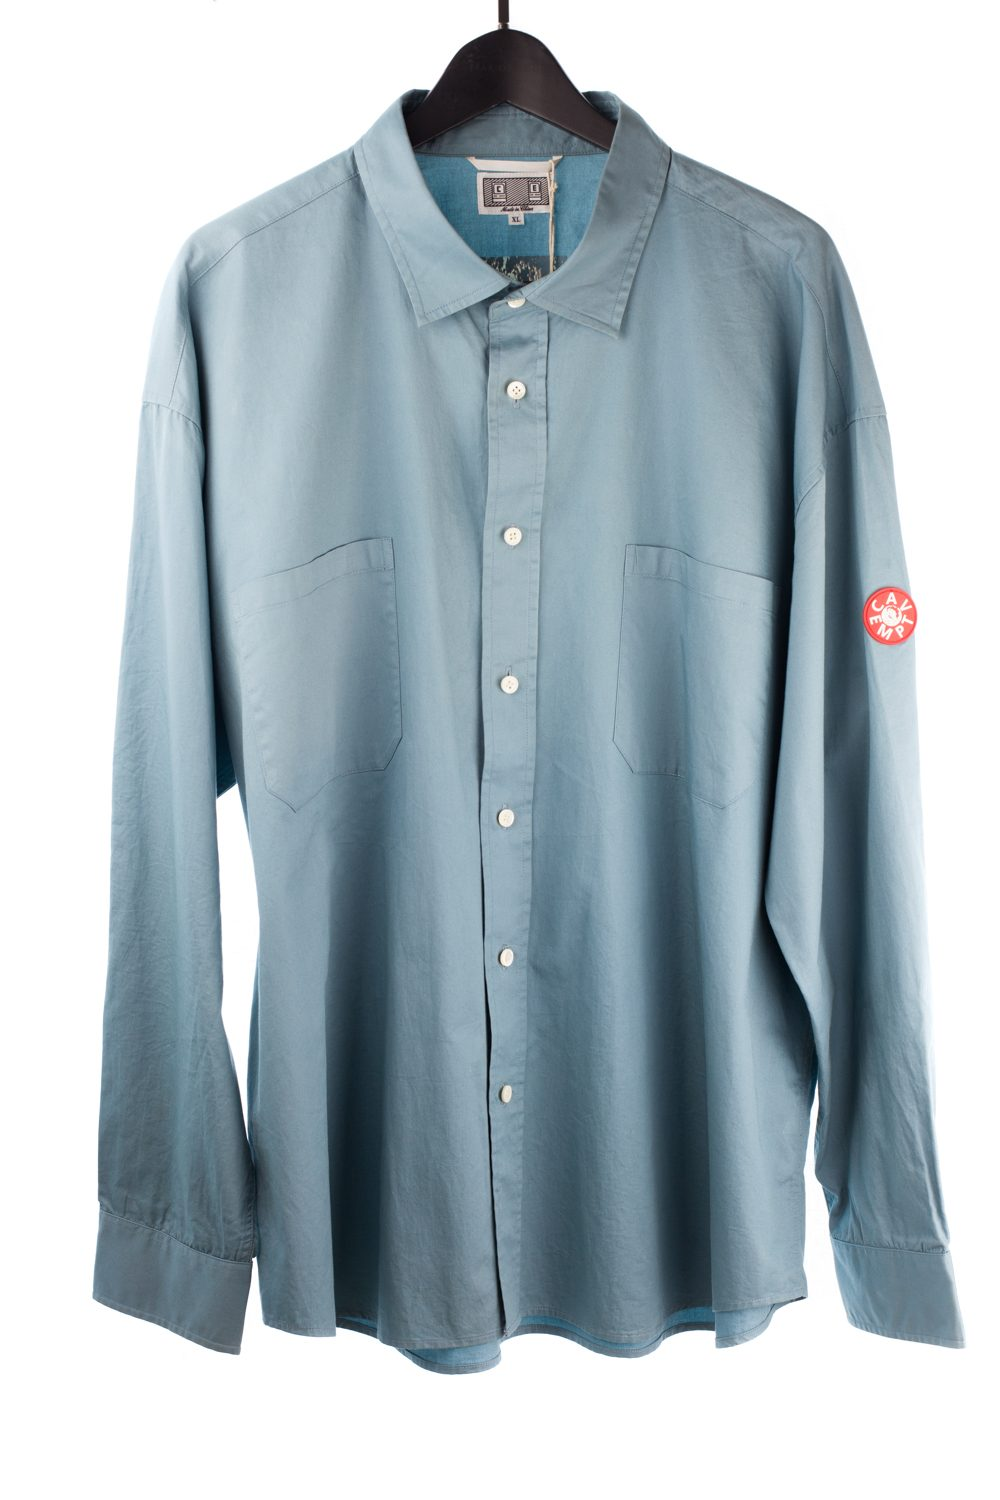 Double Pocket Cyan Button Up